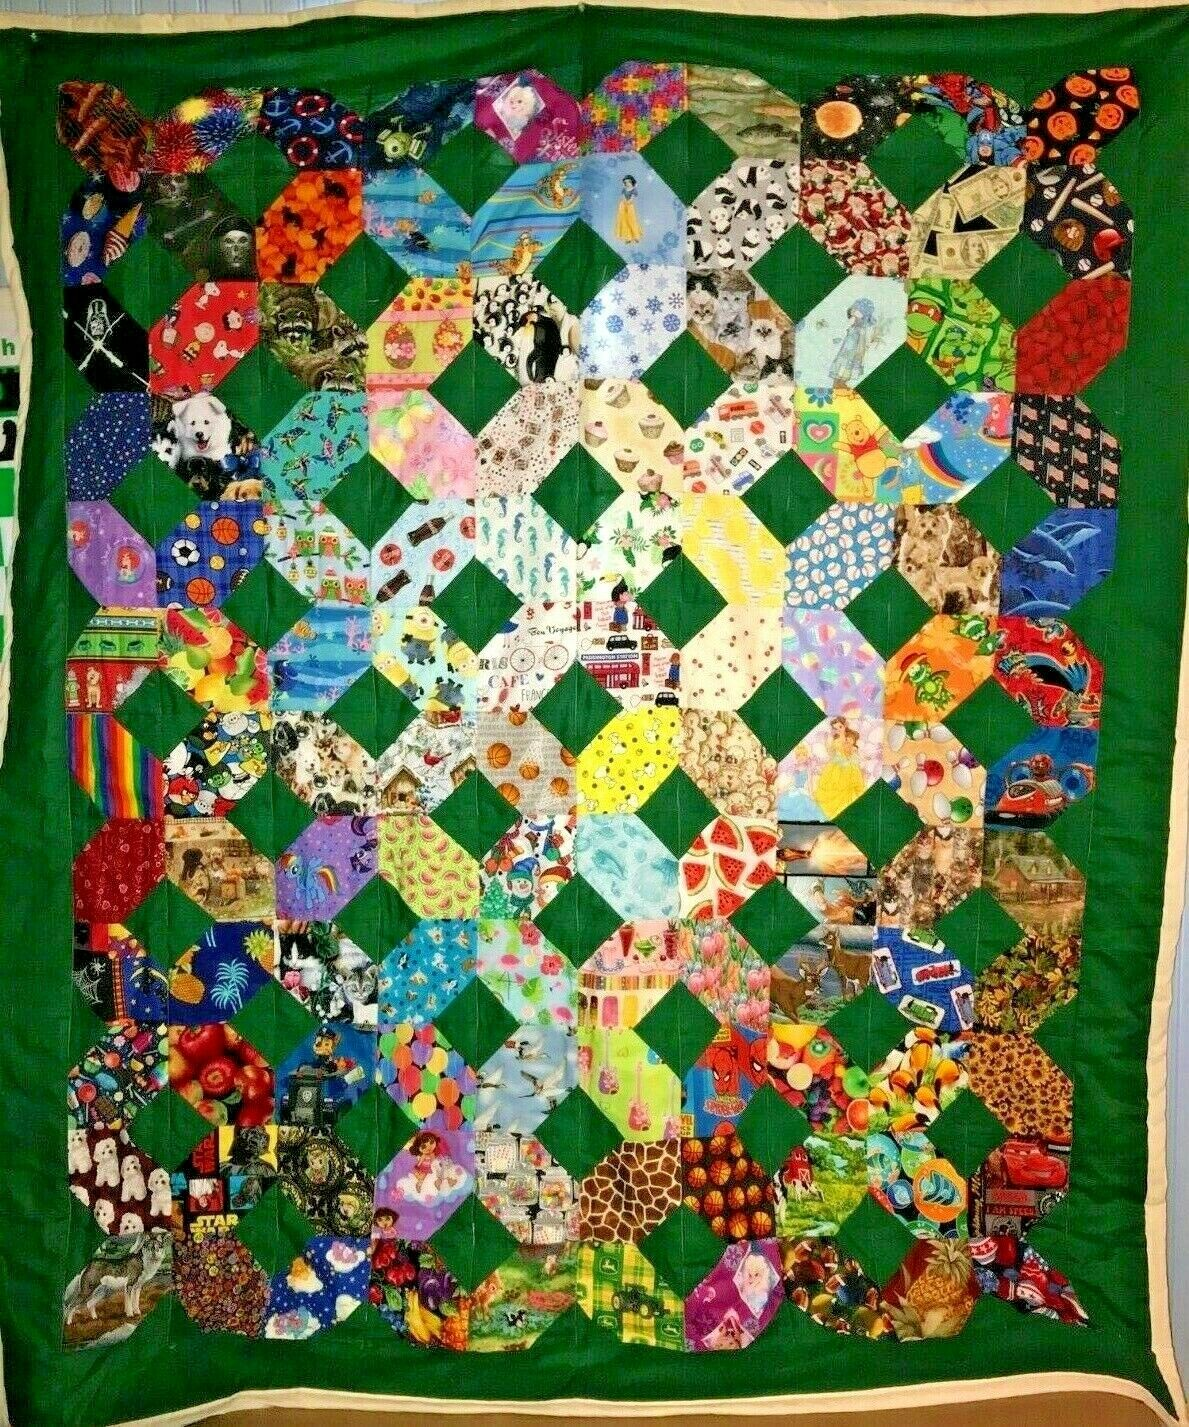 66x74 Xs Os I-Spy patchwork quilt Educational Learning Game New Handmade